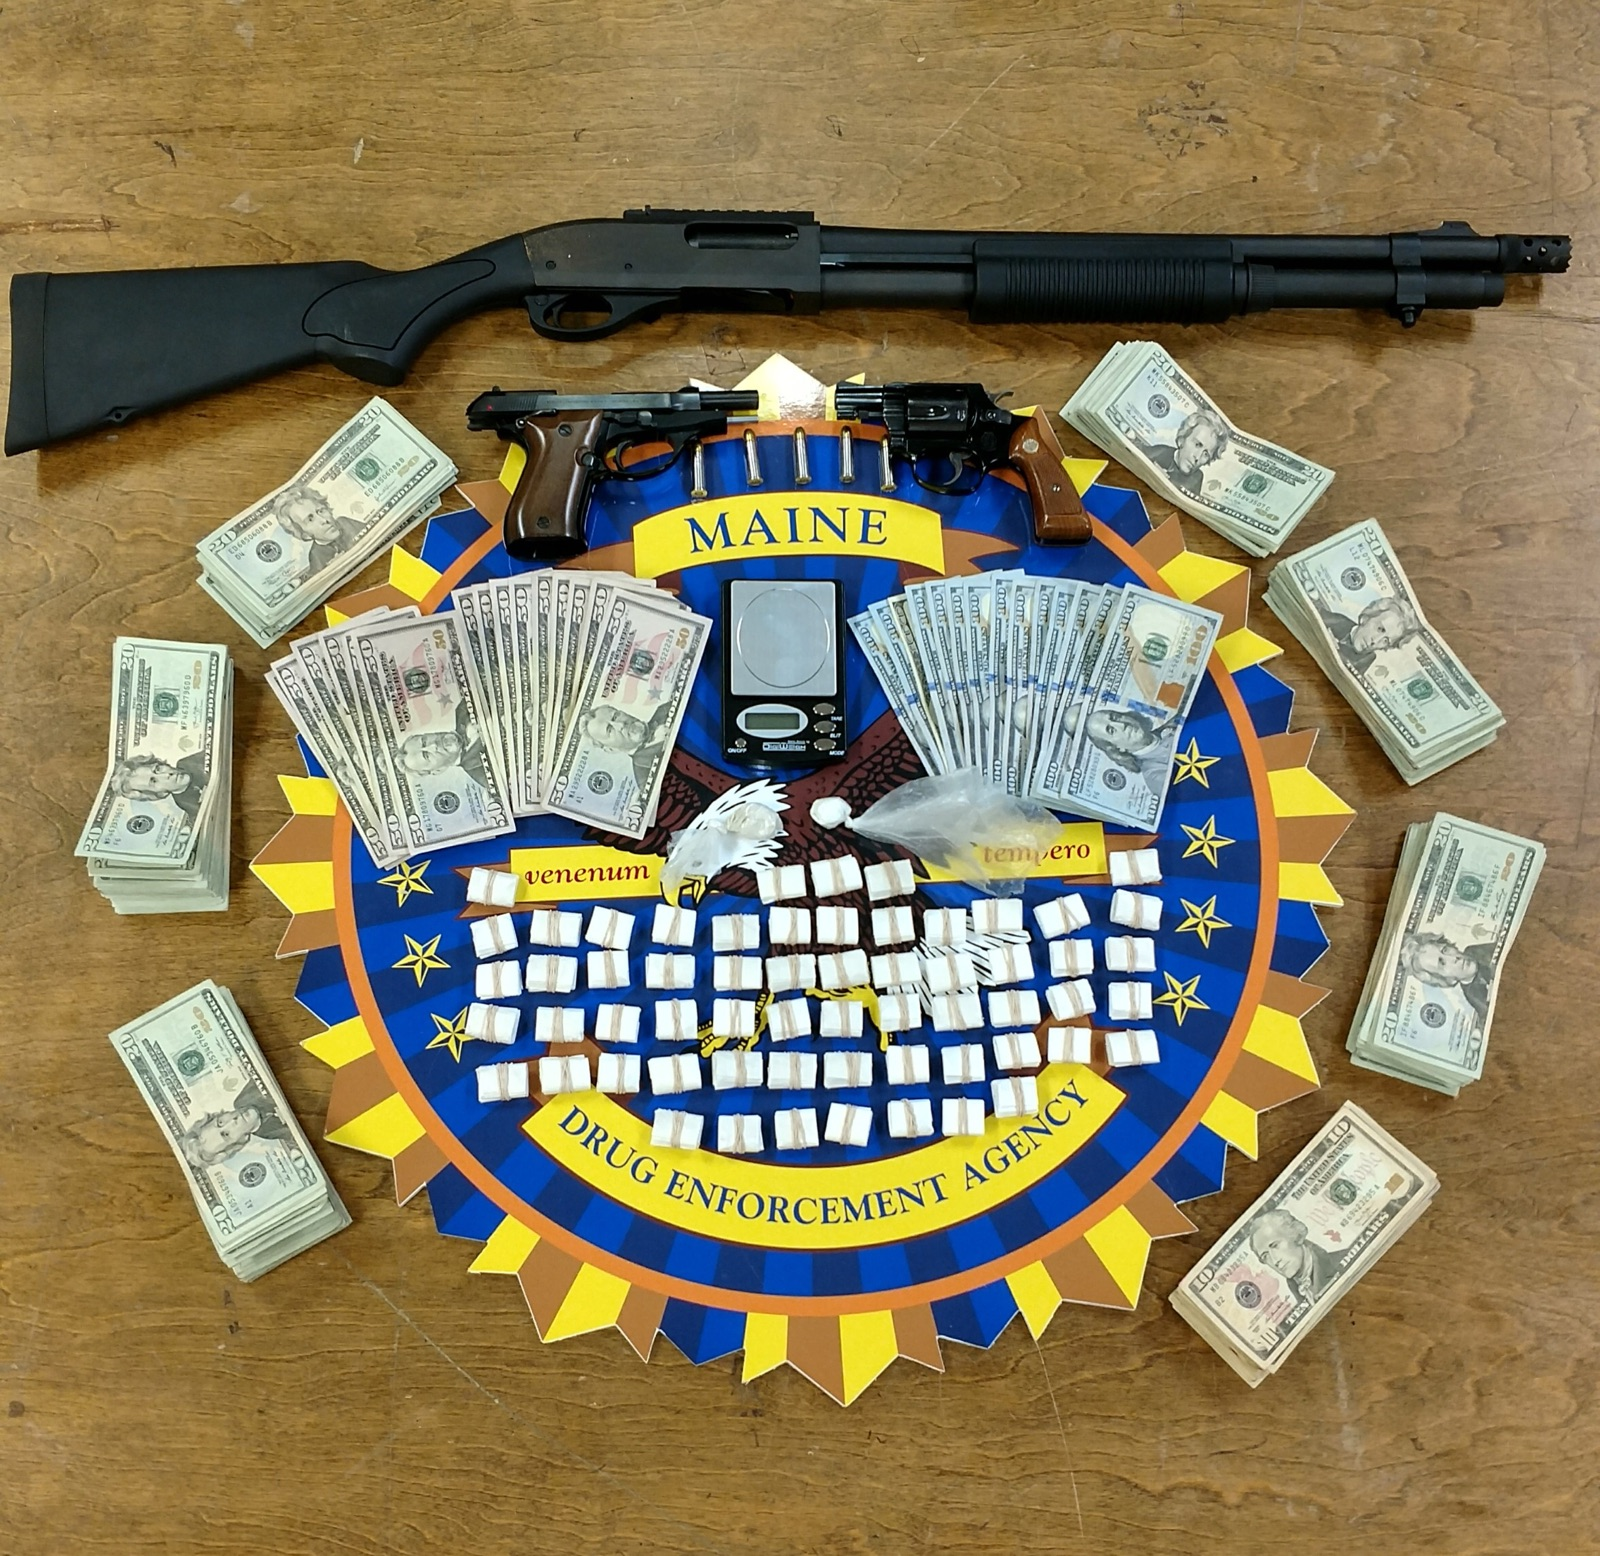 They say they seized 600 'tickets,' or dosage units of heroin, an additional 4.4 grams of heroin, 4.5 grams of crack cocaine and $9,863 in suspected drug proceeds. Two handguns and a shotgun were also confiscated, two of which had been reported stolen, according to police. (Lewiston Police Department)